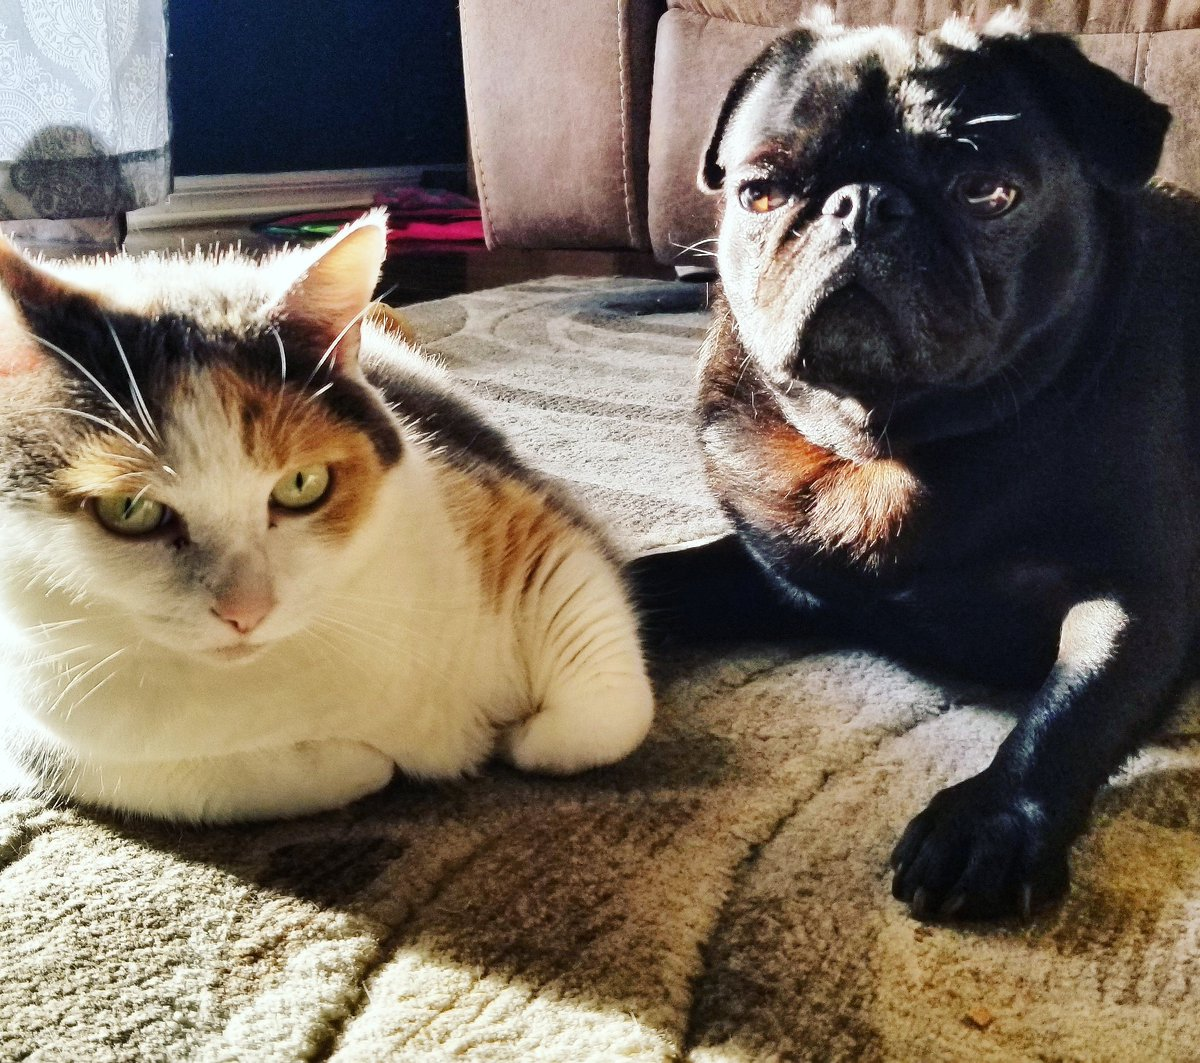 It's plainly obvious that Katniss is despising my presence in her space and that me just don't give a toot. Happy Caturday! 😻🐶😻🐶😻  #pug #pugs #cat #cats #dog #dogs